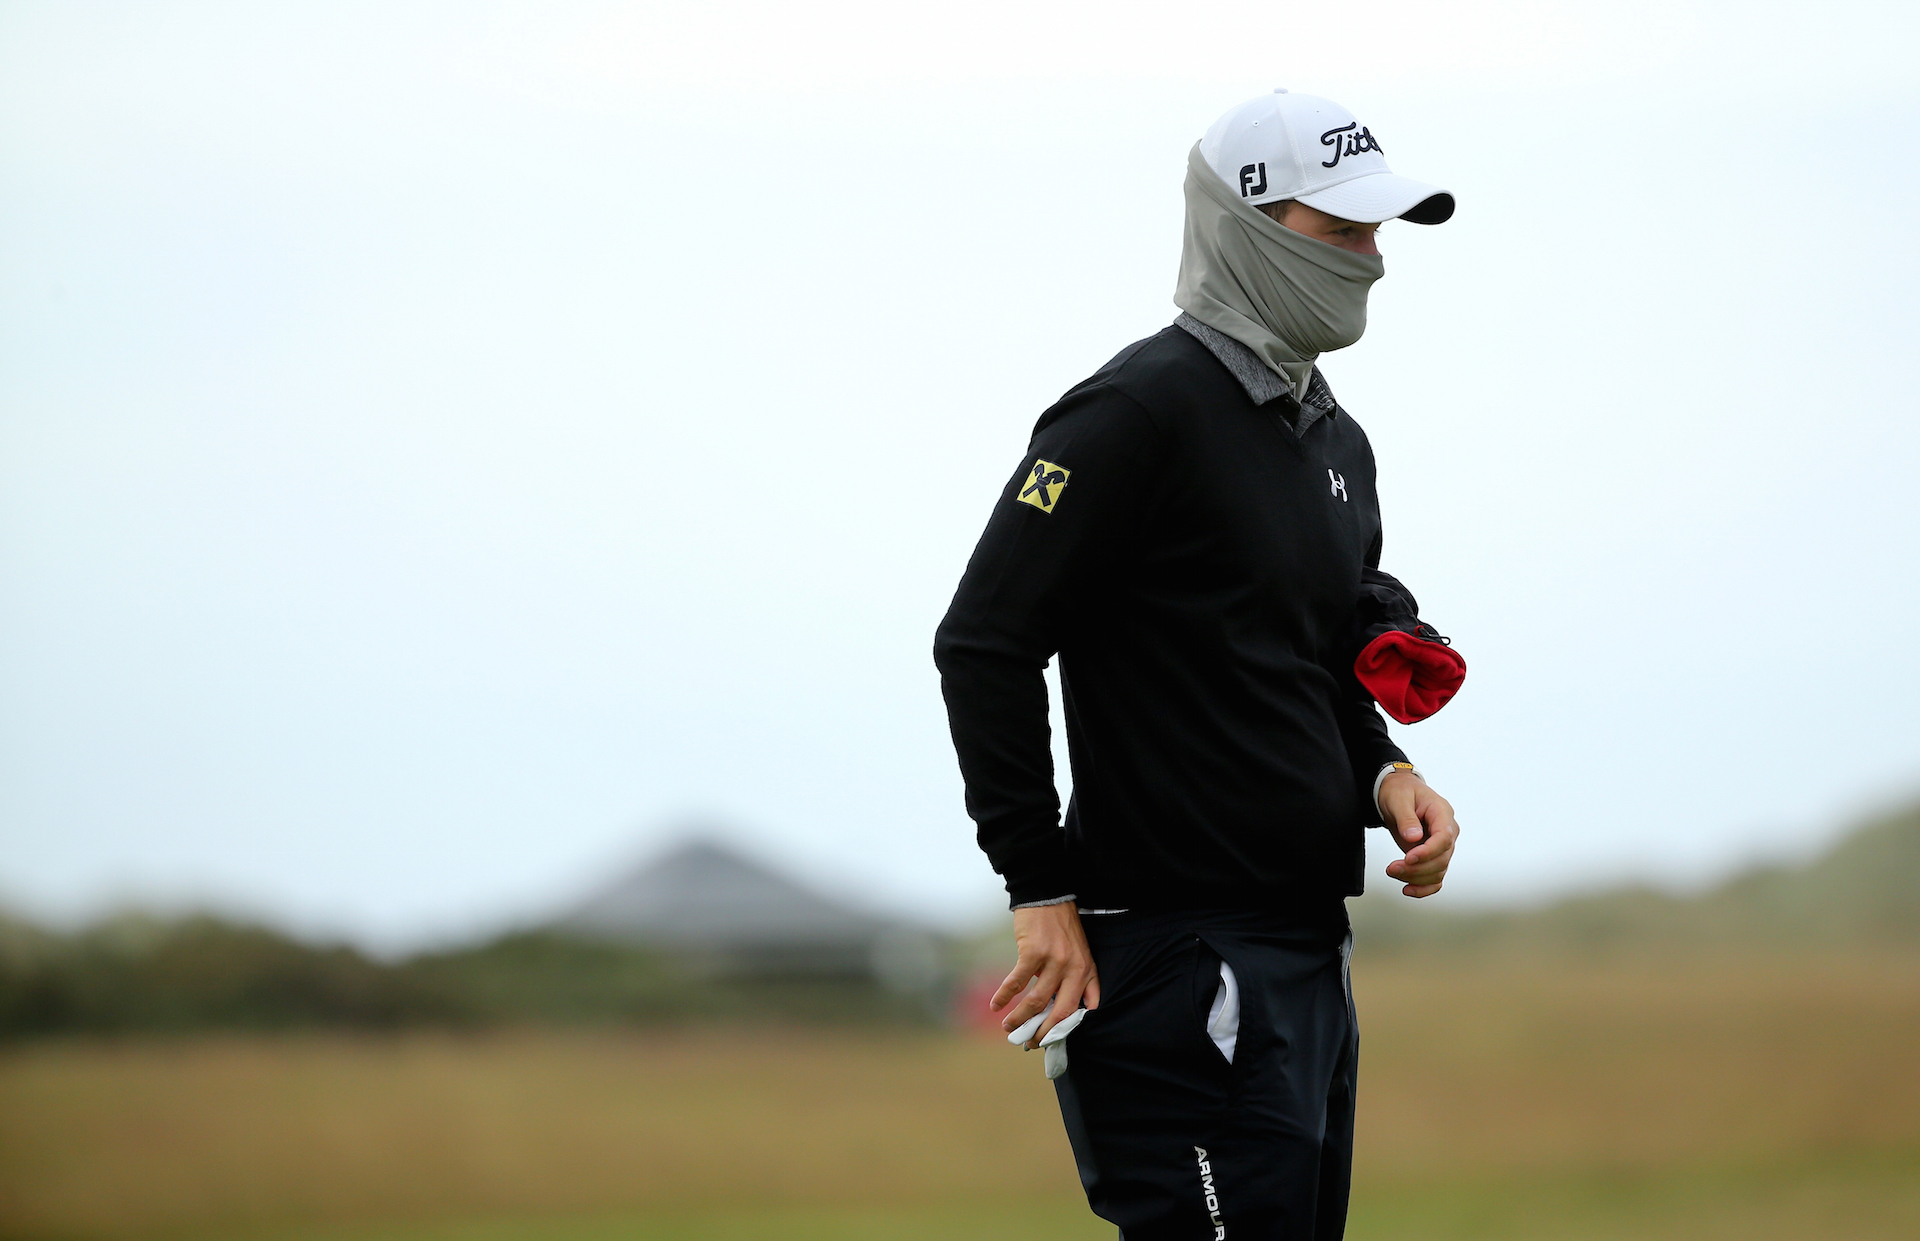 Top 6 Golfers Who Could Be Informants